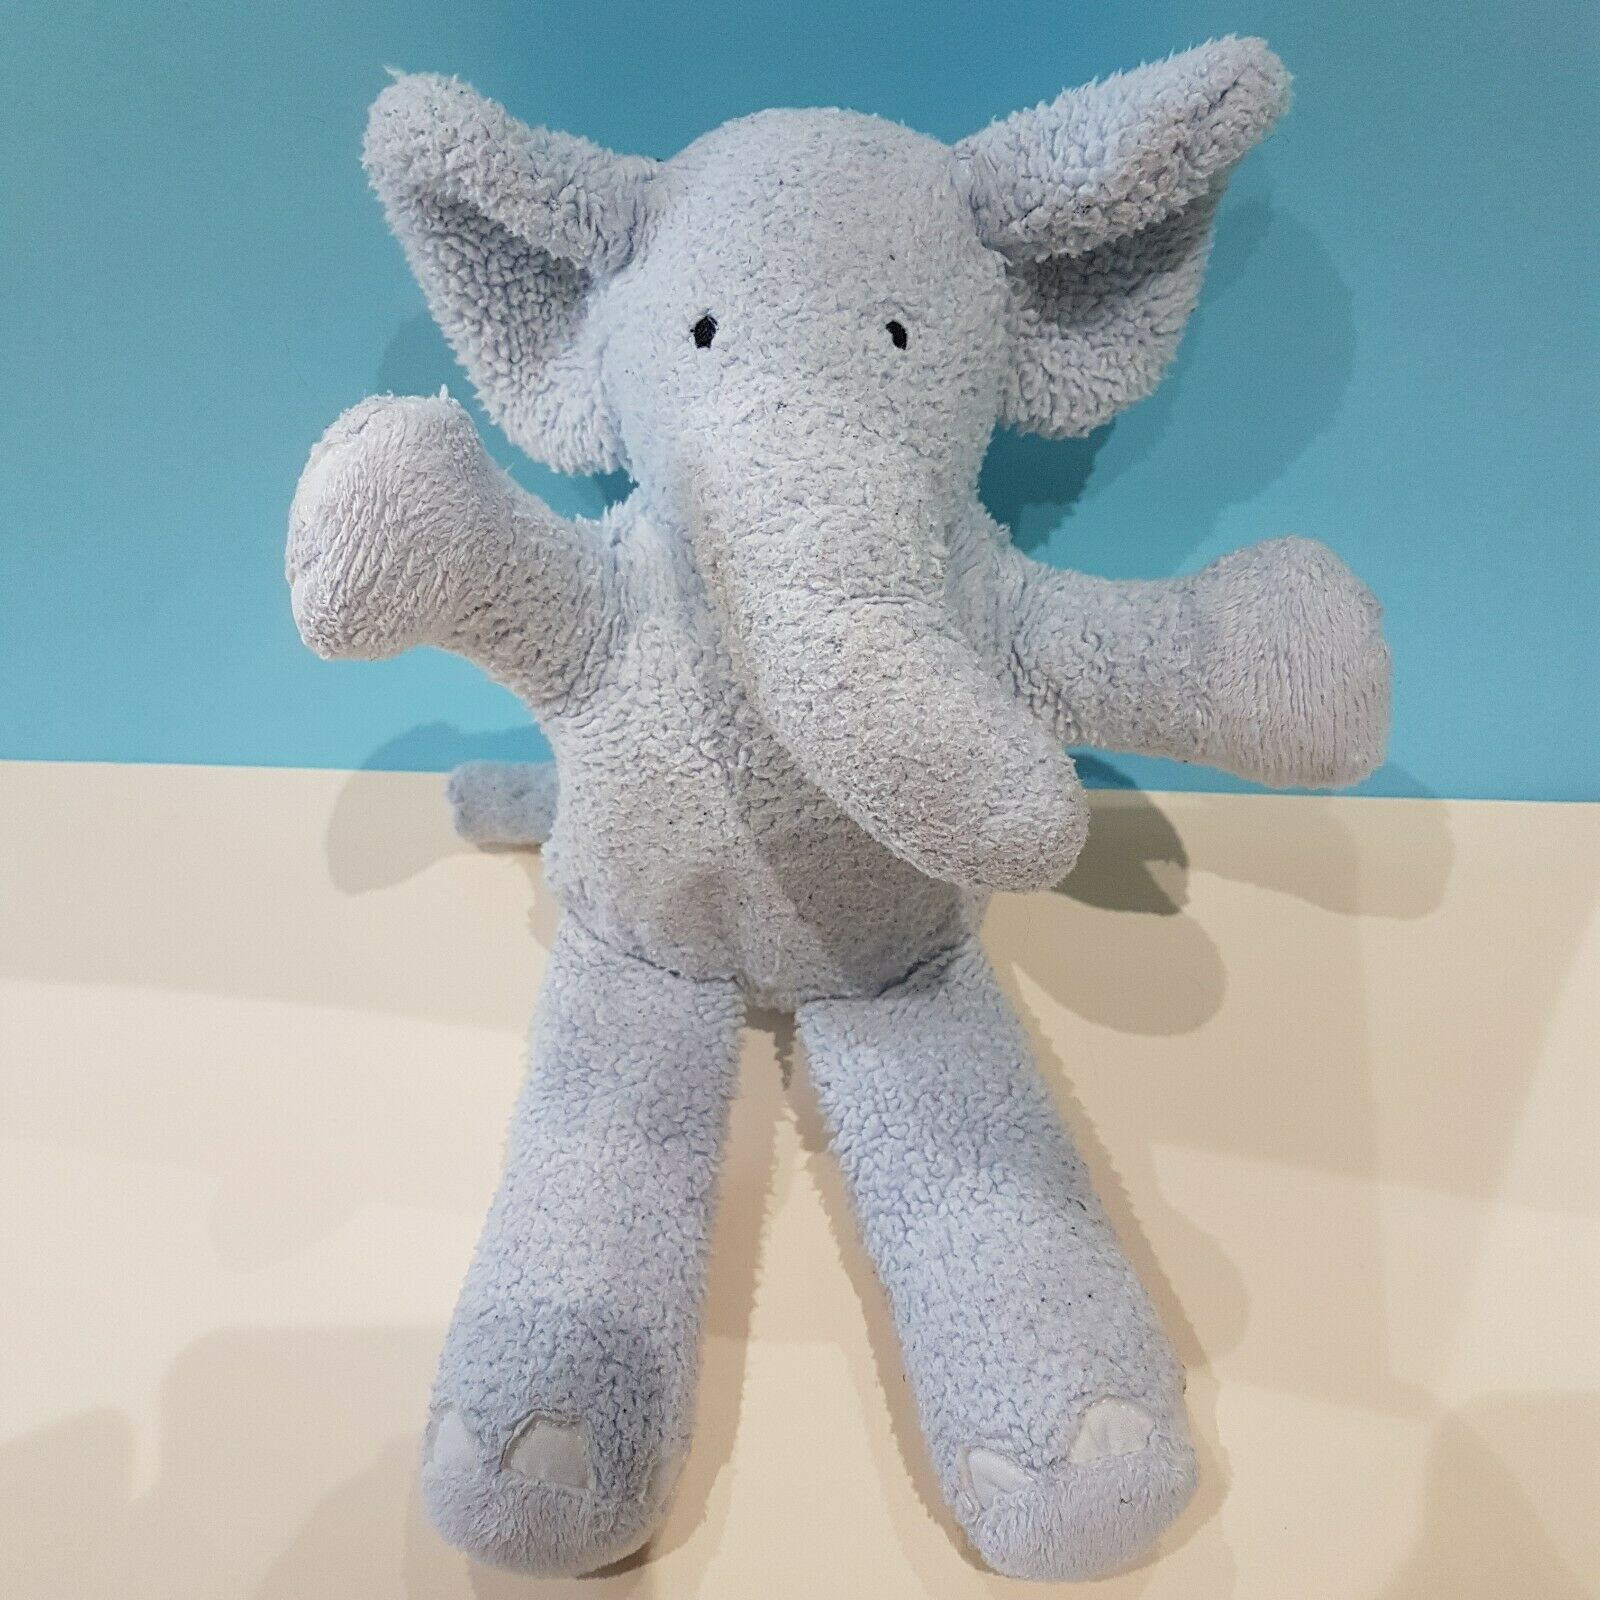 Jellycat Medium bluee Elephant Soft Toy Comforter Musical Pull